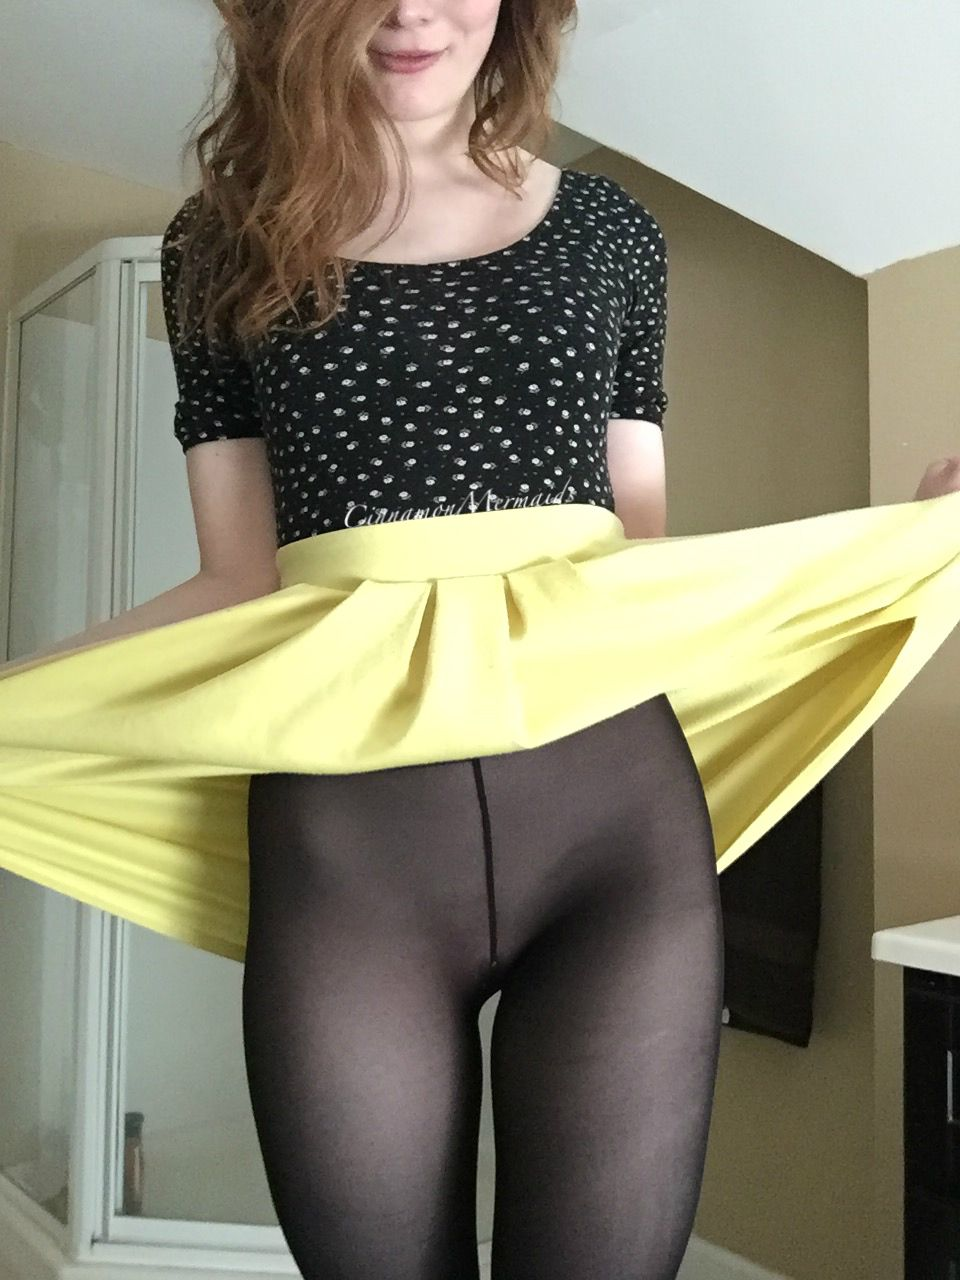 i've got nothing on under these tights. [self] | nylon sex